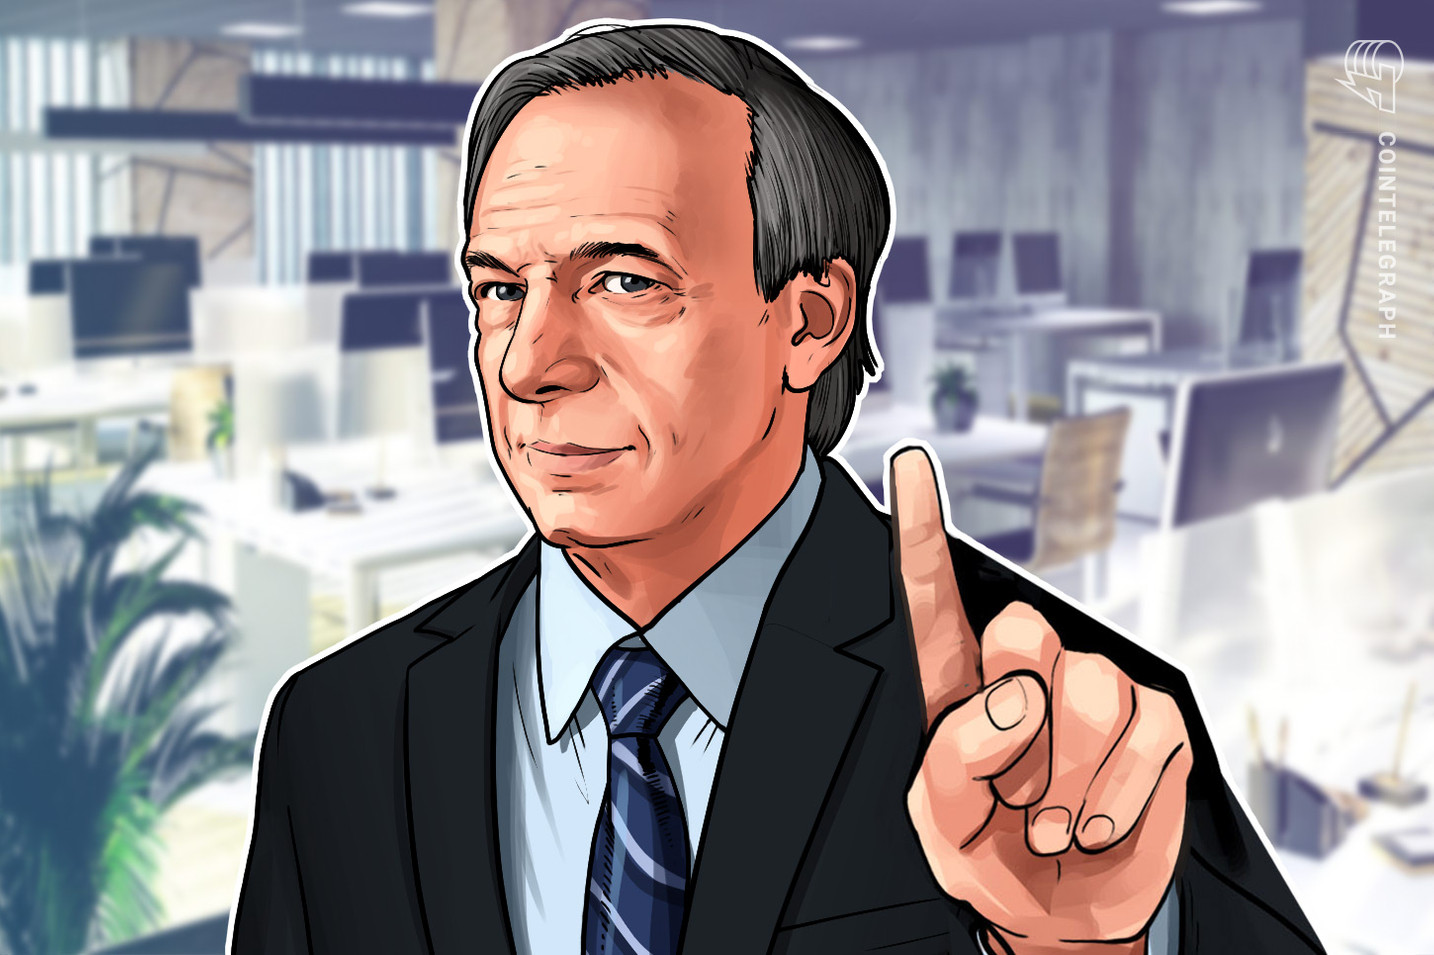 'A flood of money and credit' — Ray Dalio's new Bitcoin praise echoes MicroStrategy